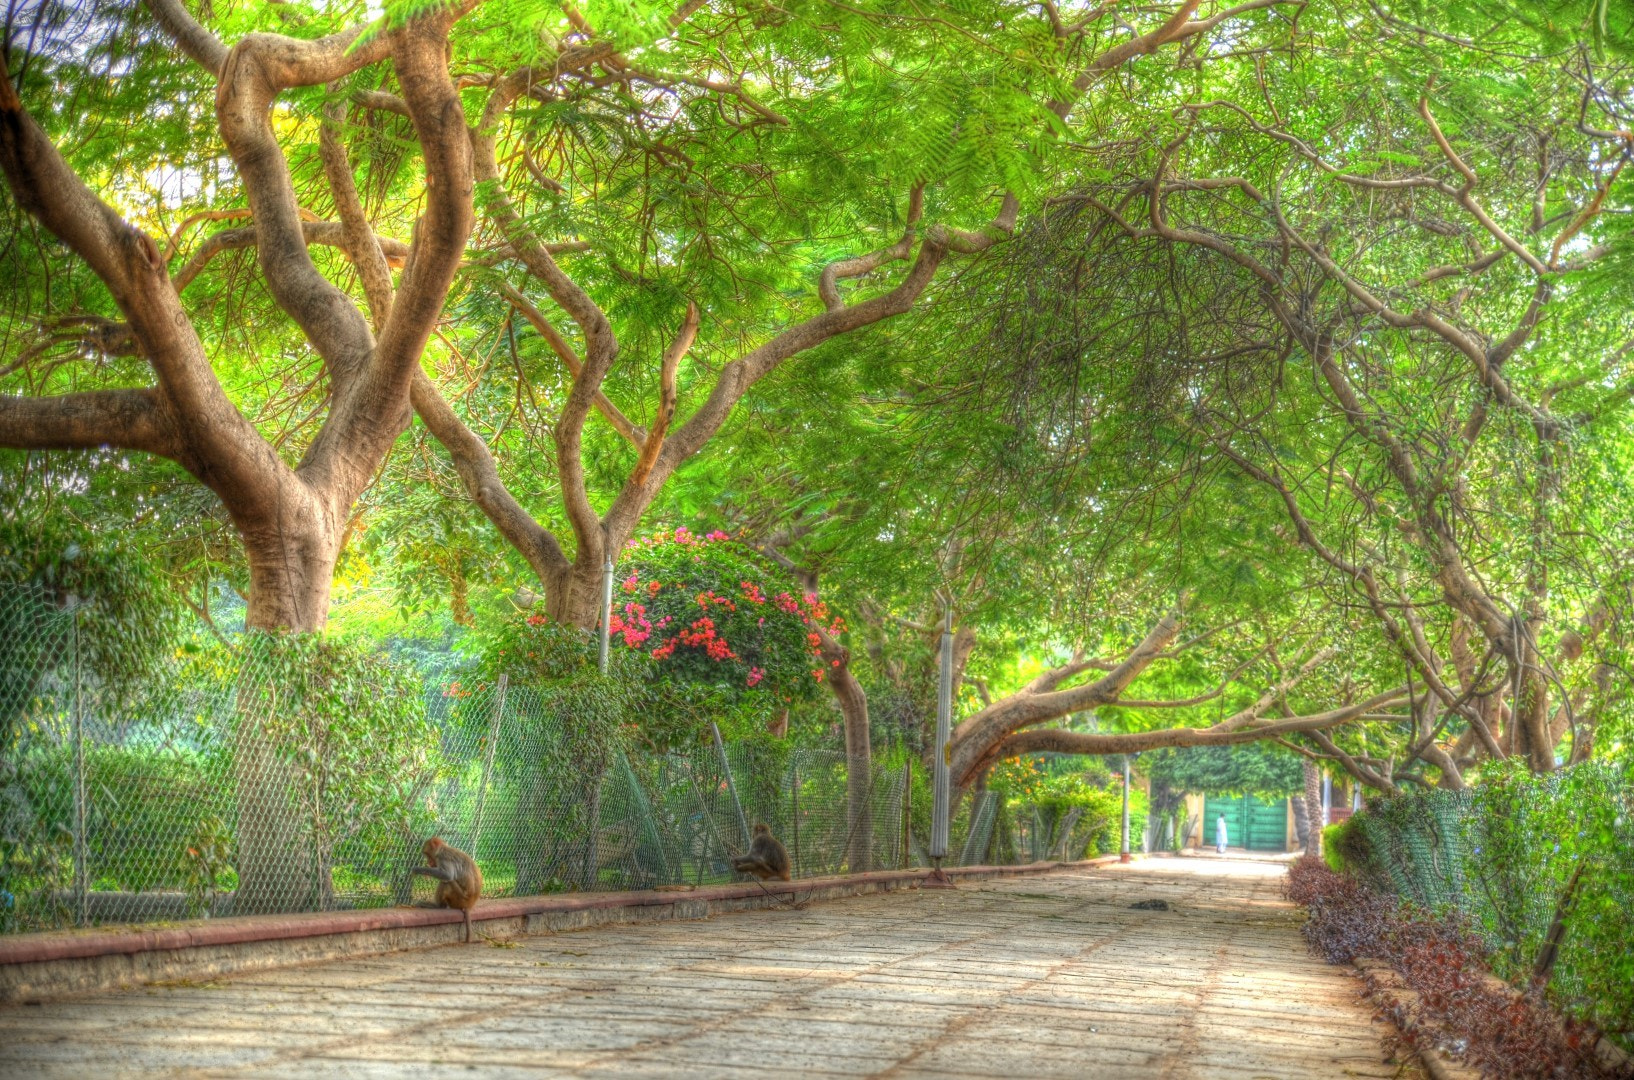 Photograph In the park by Claudia Gadea on 500px